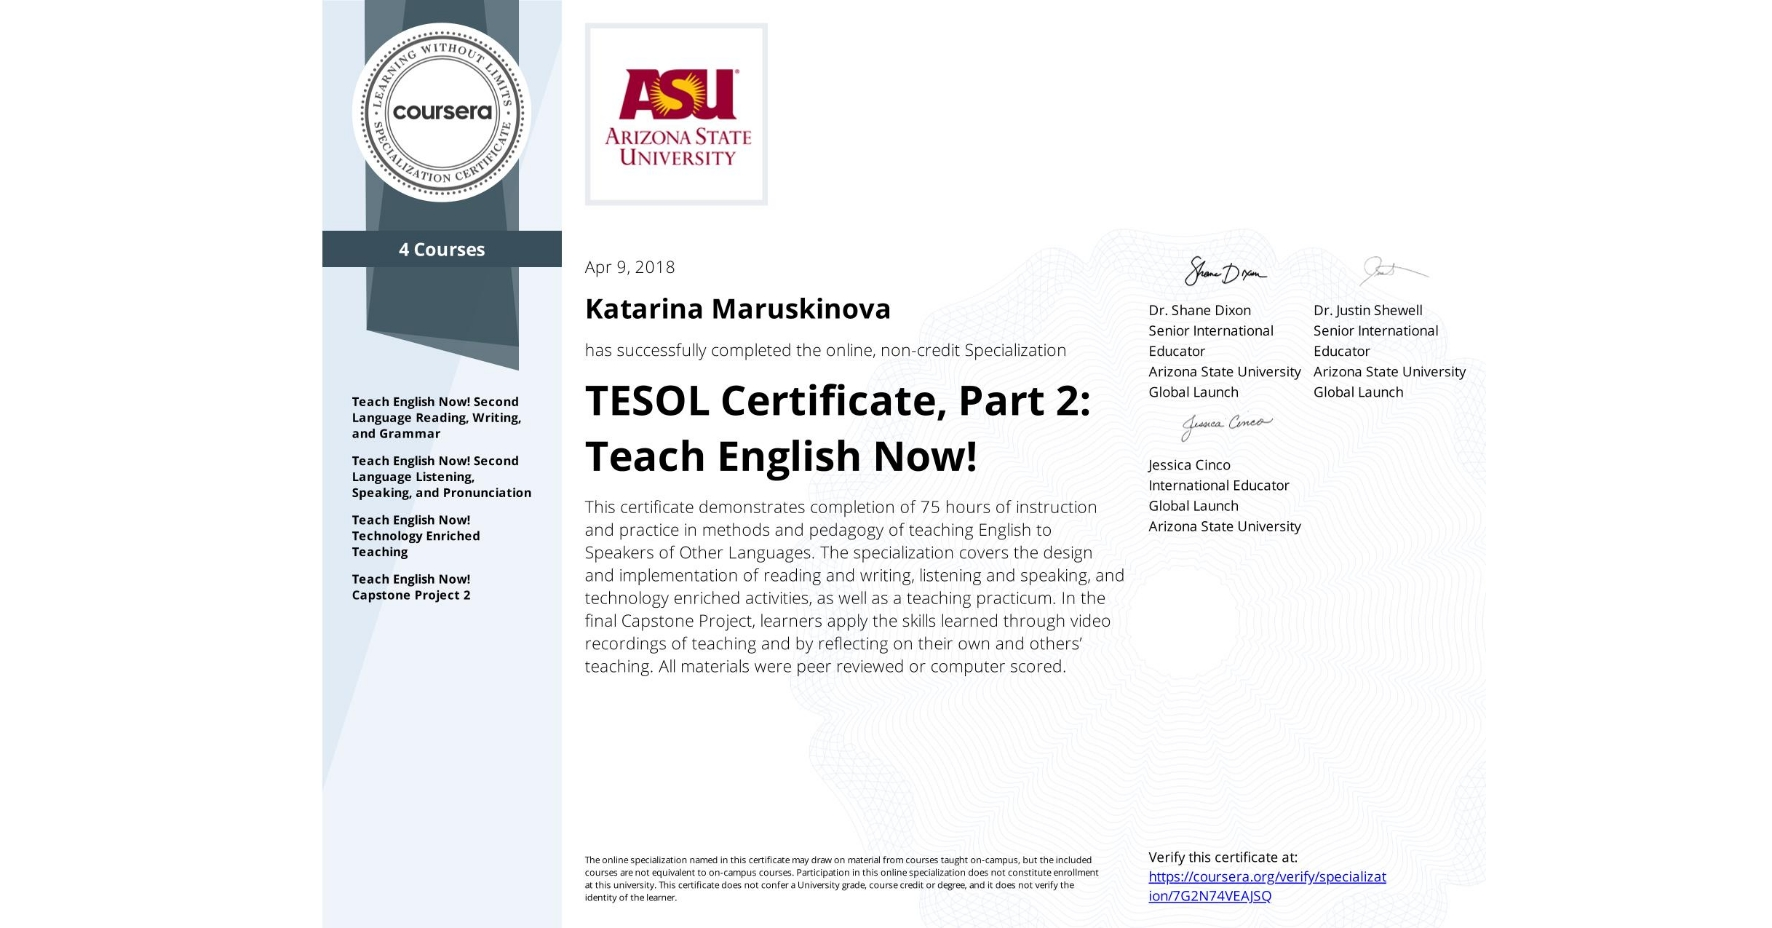 View certificate for Katarina Maruskinova, TESOL Certificate, Part 2: Teach English Now!, offered through Coursera. This certificate demonstrates completion of 75 hours of instruction and practice in methods and pedagogy of teaching English to Speakers of Other Languages.  The specialization covers the design and implementation of reading and writing, listening and speaking, and technology enriched activities, as well as a teaching practicum. In the final Capstone Project, learners apply the skills learned through video recordings of teaching and by reflecting on their own and others' teaching. All materials were peer reviewed or computer scored.